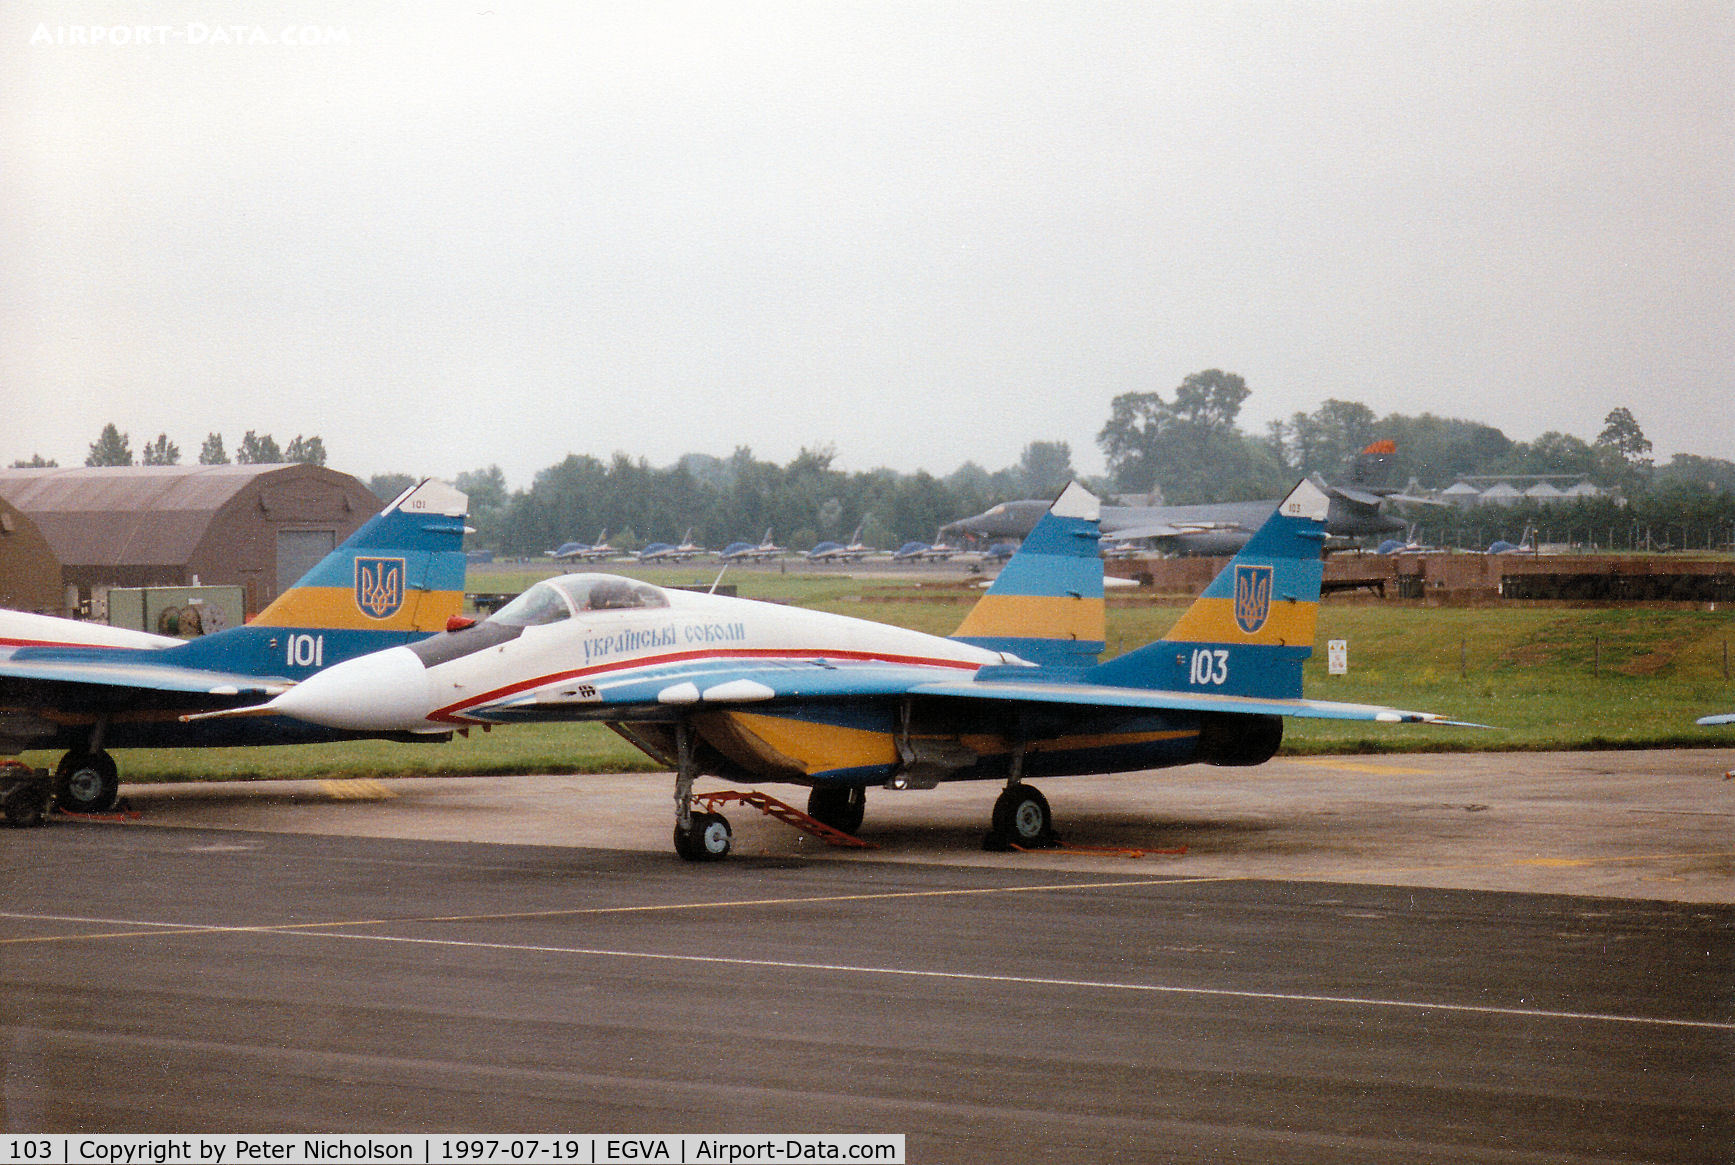 103, Mikoyan-Gurevich MiG-29A C/N 31227, MiG-29A Fulcrum of the Ukranian Falcons display team on the flight-line at the 1997 Intnl Air Tattoo at RAF Fairford.